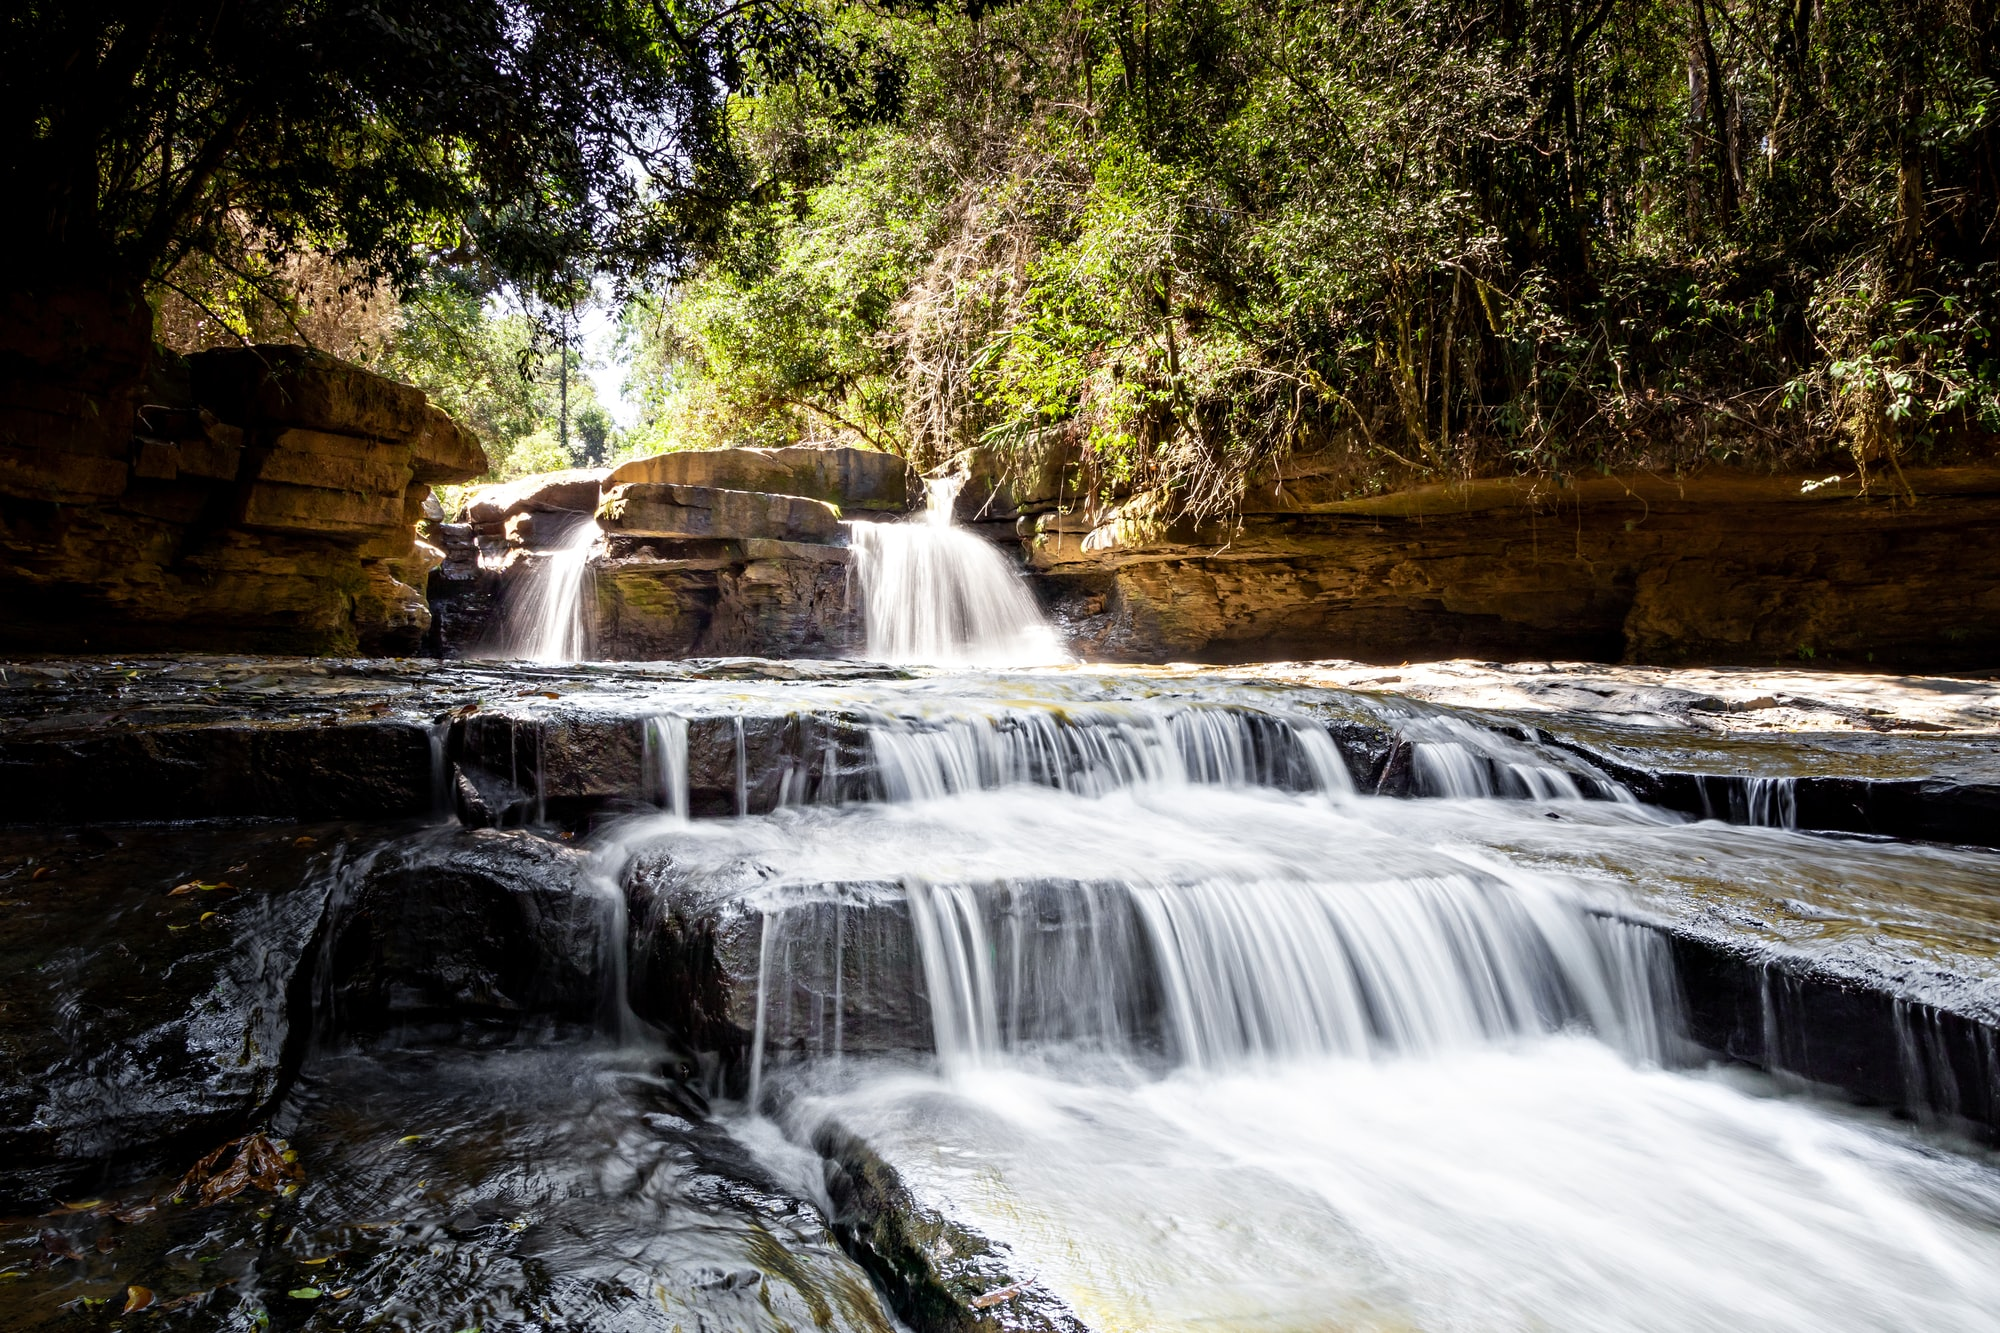 Twins Waterfall located in Ituporanga south Brazil. Just sit on the passing water and enjoy.